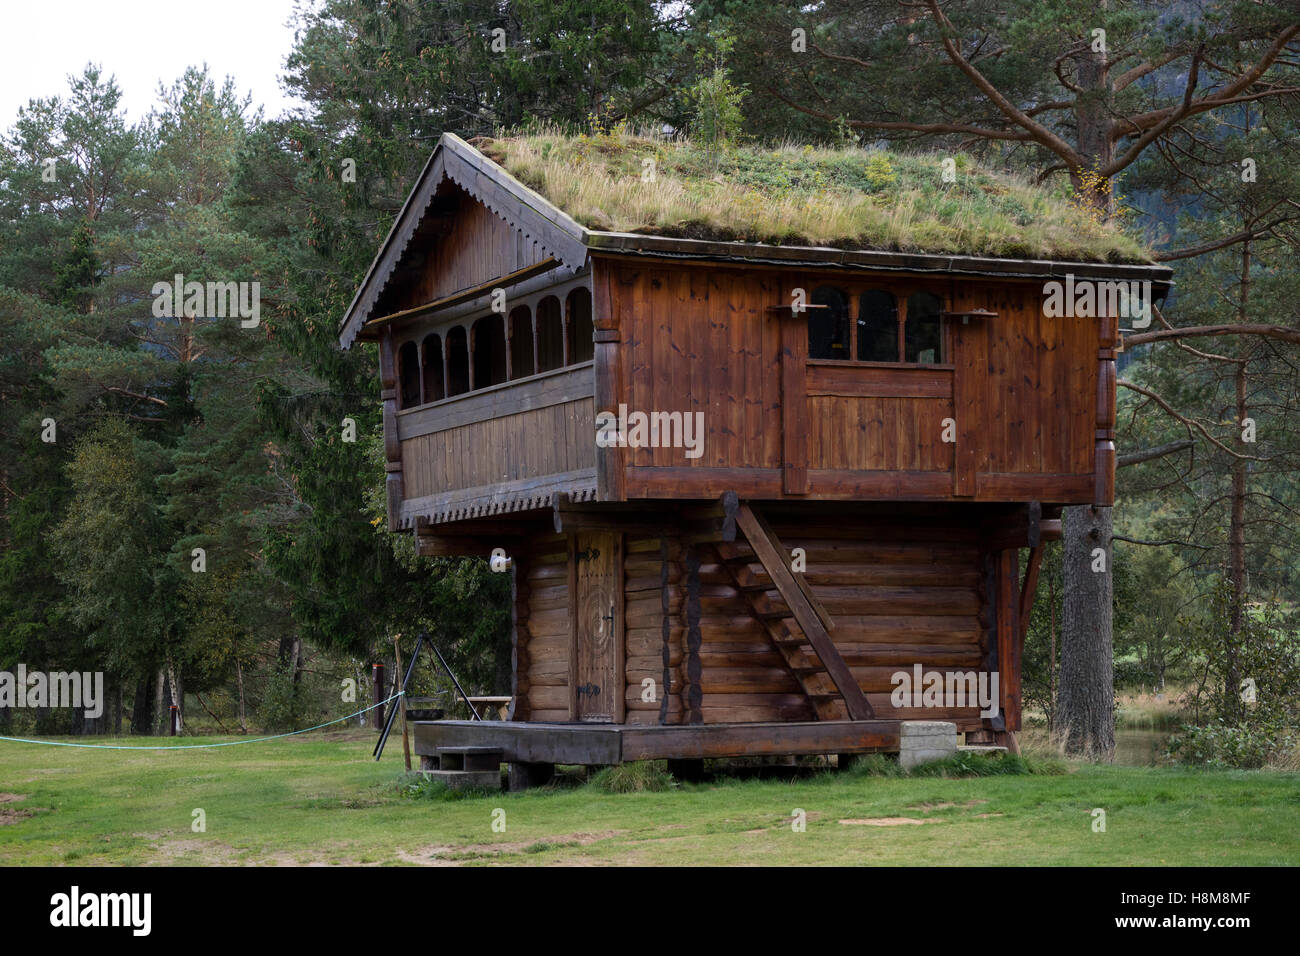 Grass-roofed shed, old-fashioned food storage house at Valle in the Setesdal, Norway - Stock Image